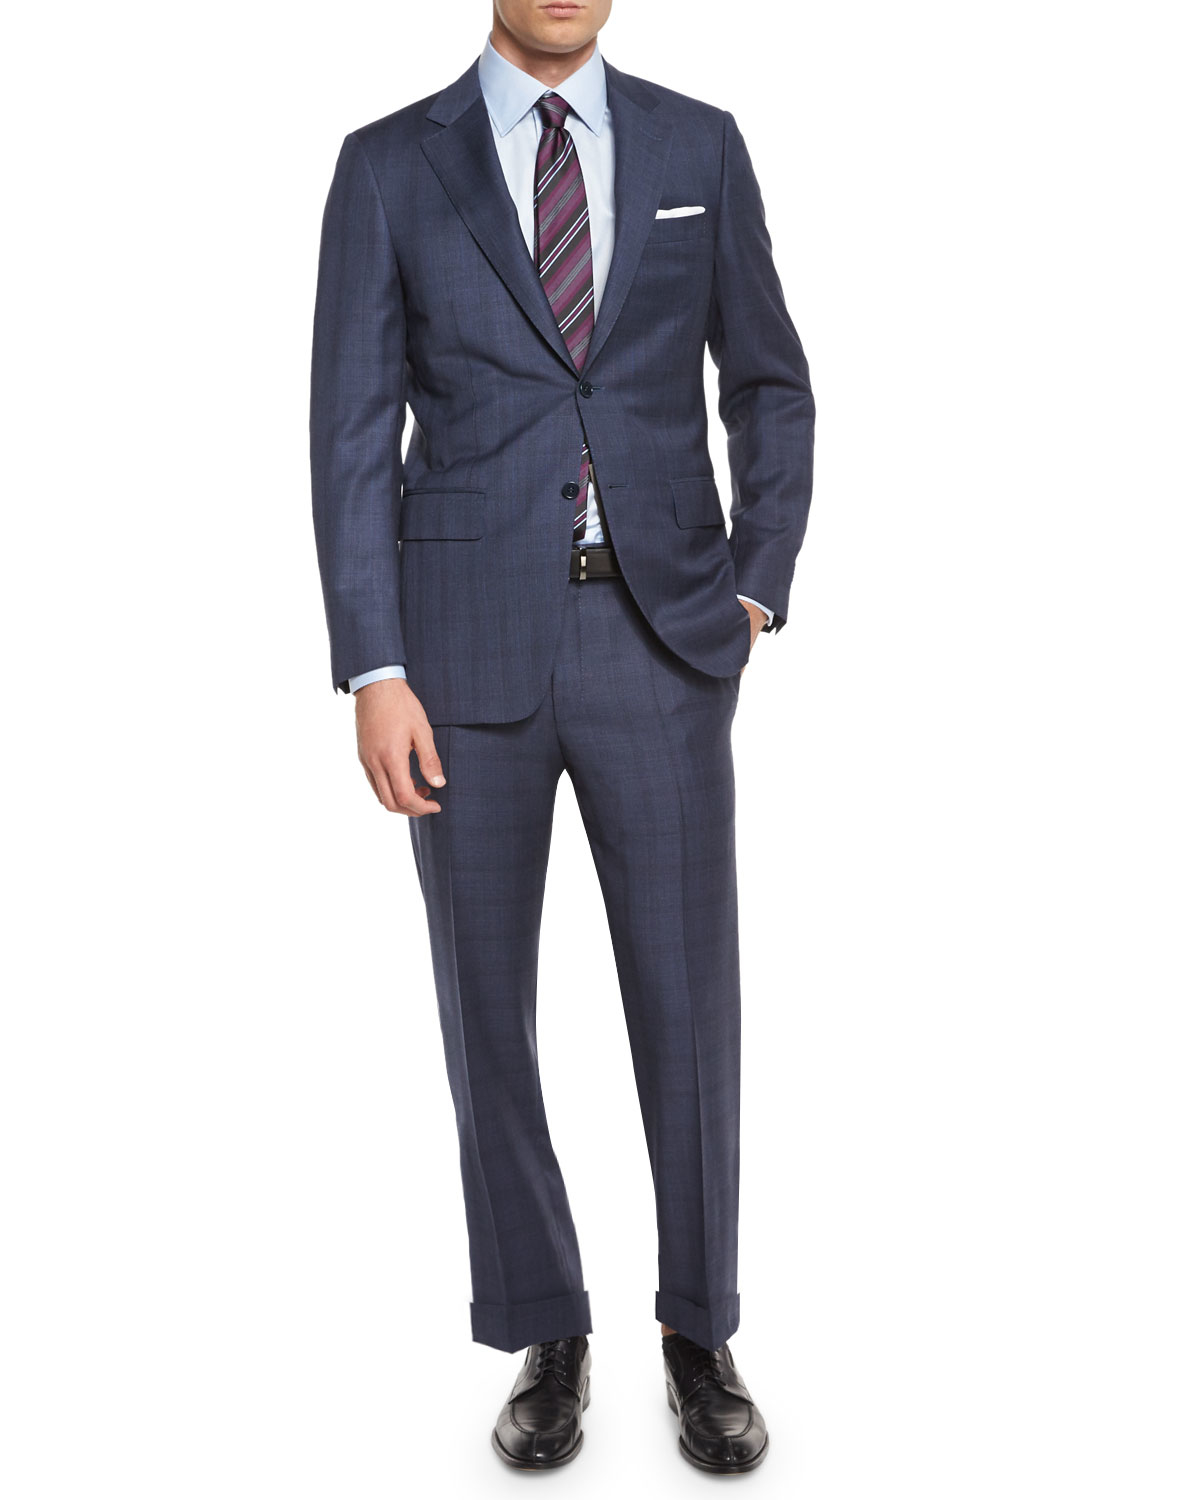 Buy two-piece suits from Charles Tyrwhitt of Jermyn Street, London. Choose from a range of cuts and styles to find your perfect suit.